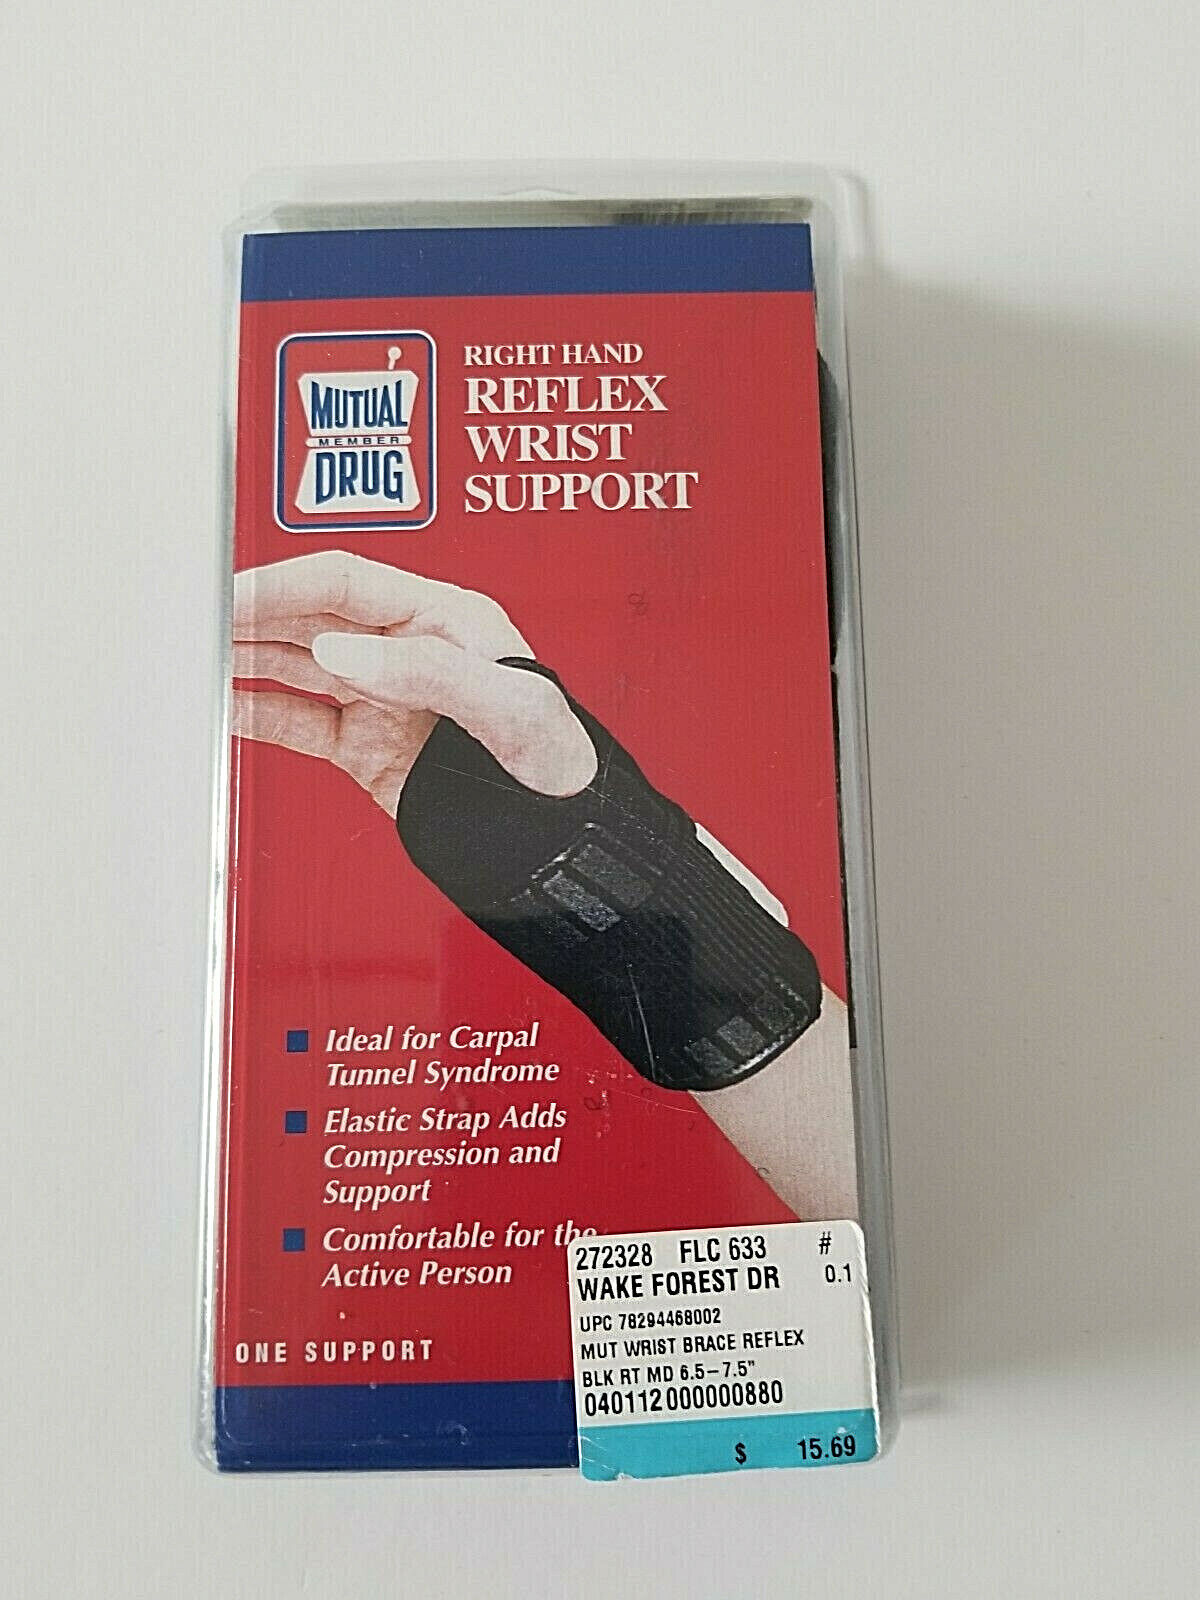 Wrist Support Right Hand Size Medium Ideal For Carpal Tunnel - $4.99